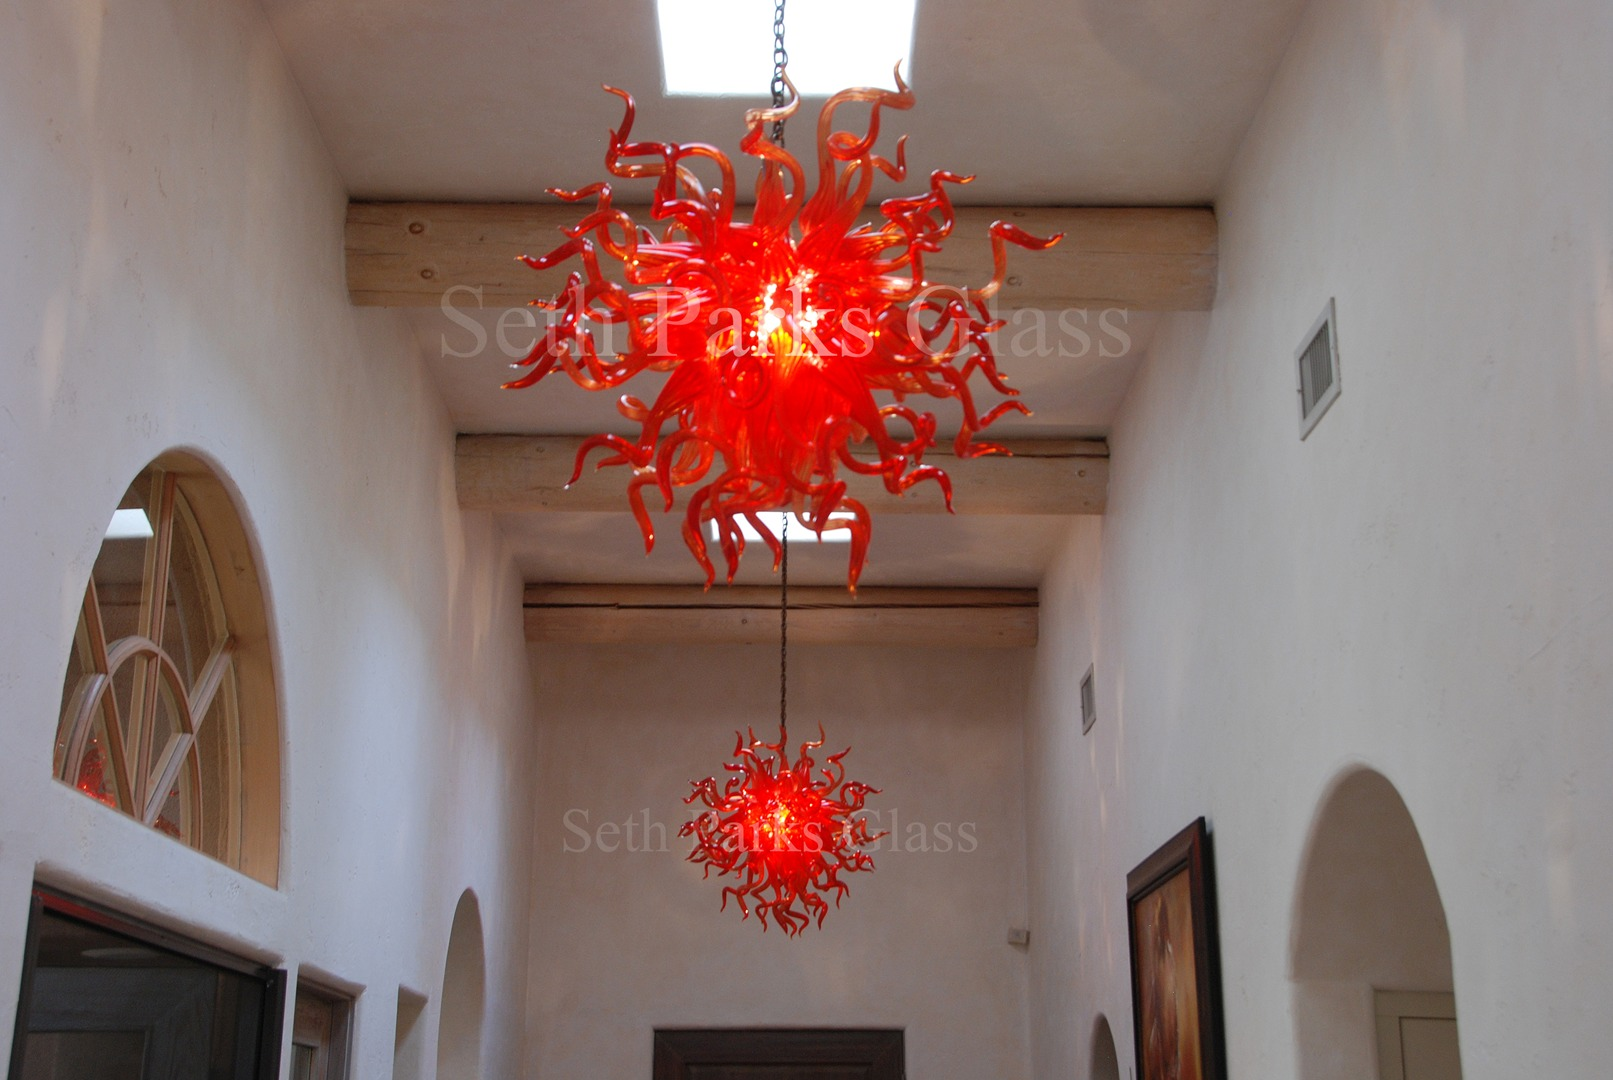 Hand blown glass chandeliers hand blown glass chandeliers view on mobile aloadofball Choice Image